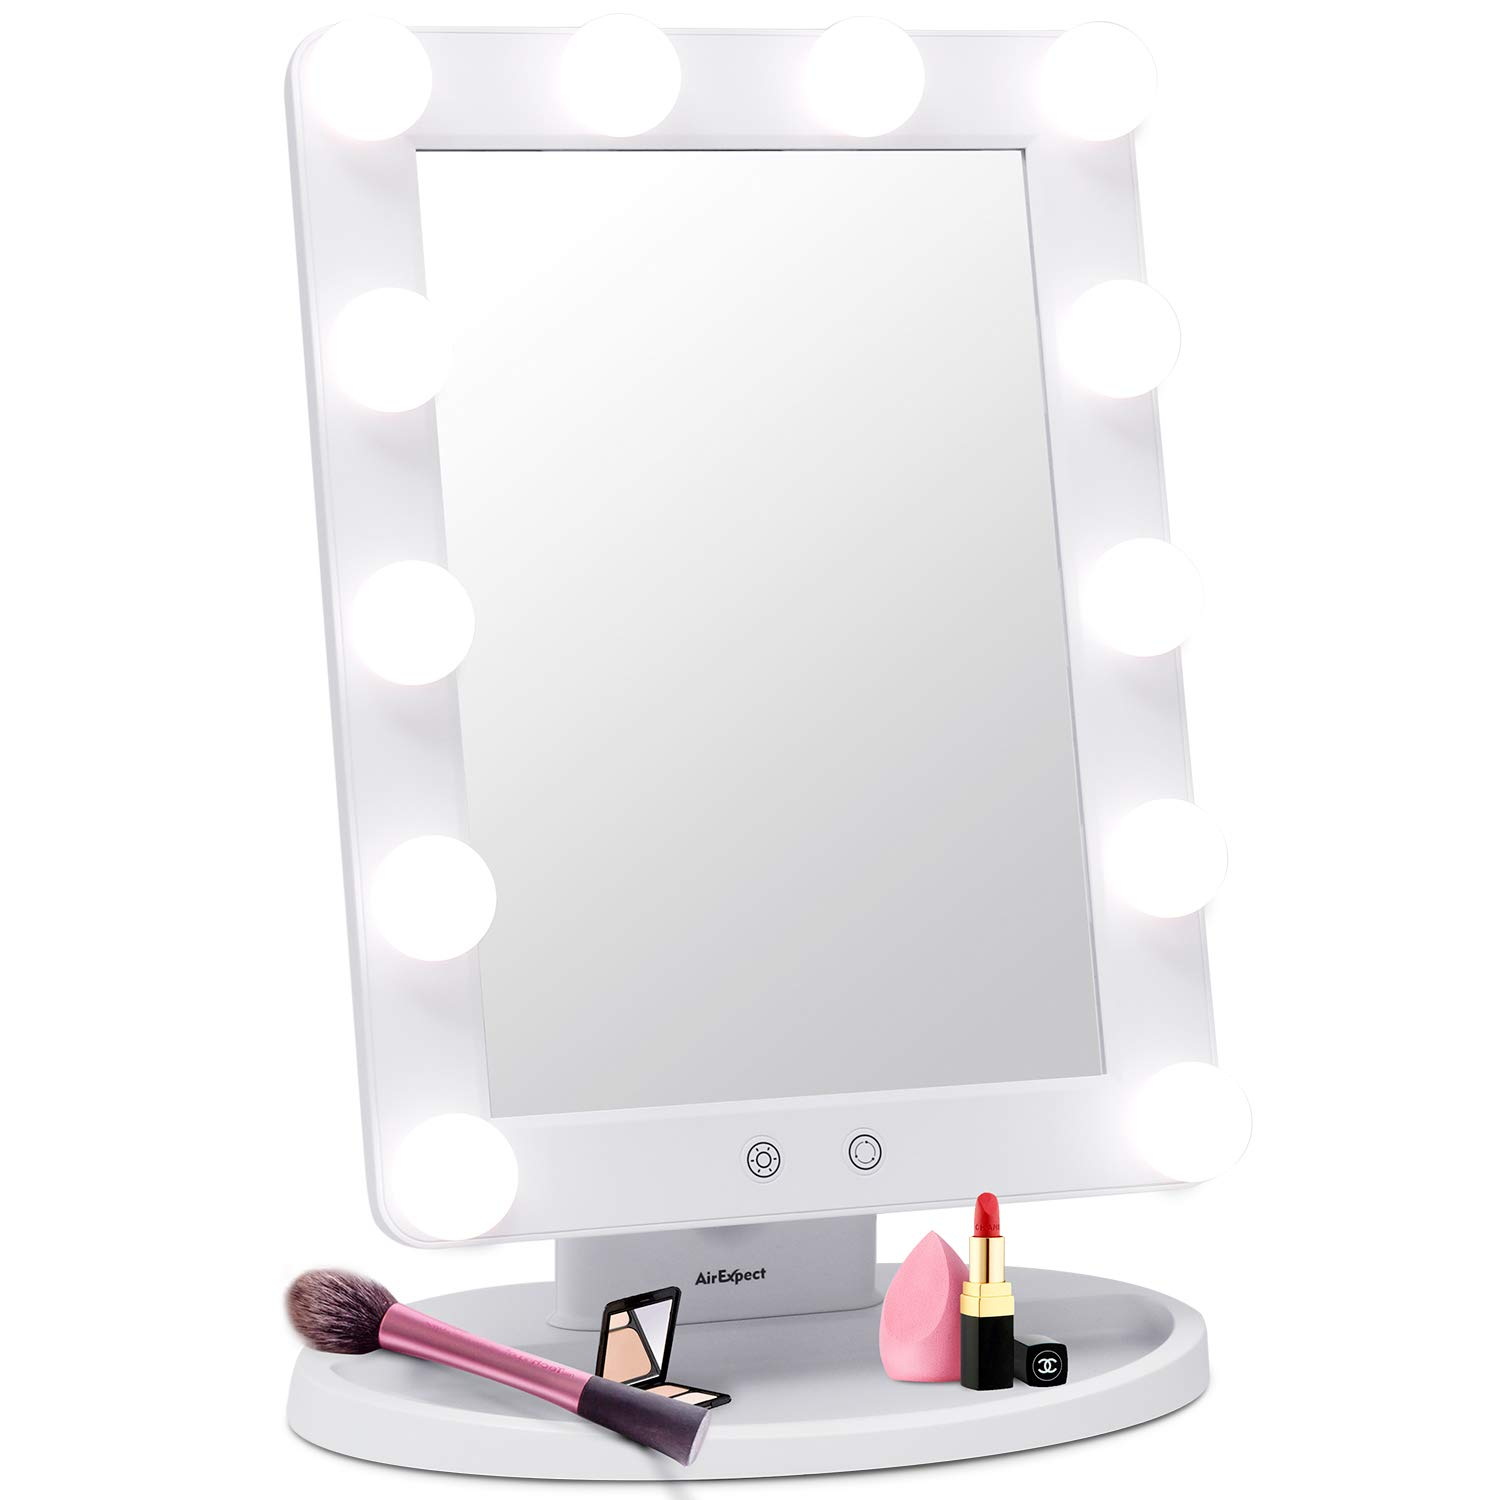 AirExpect Makeup Vanity Mirror with Light Bulbs - 3 Color Lighting Modes Hollywood Style Tabletops Lighted Cosmetic Mirror with 12 Dimmable LED Bulbs and Touch Control Design